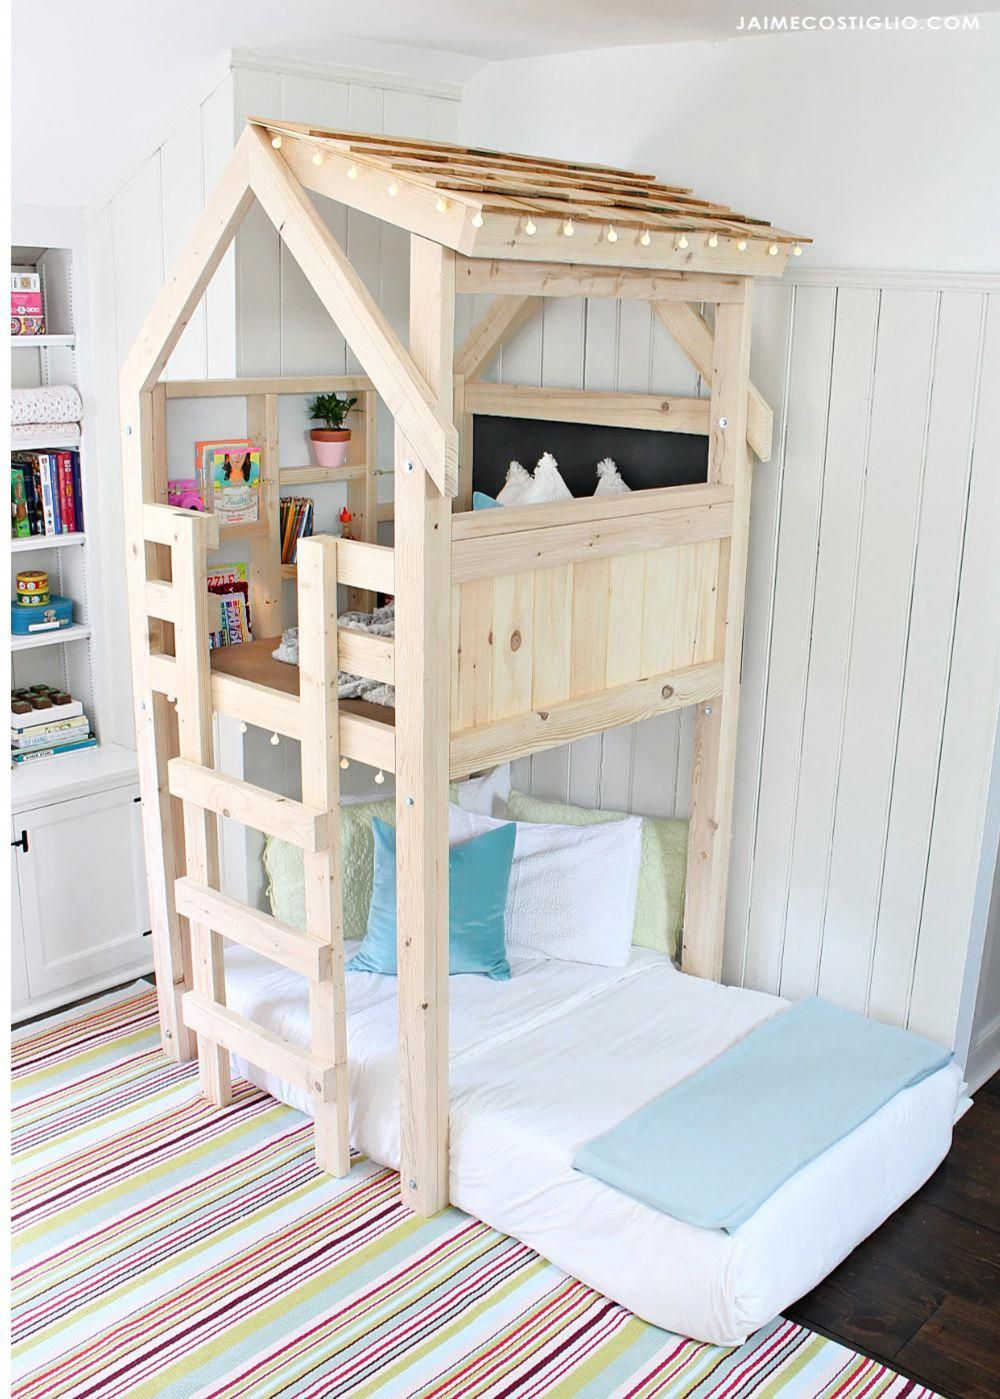 Ana White Over Bed Indoor Playhouse DIY Projects